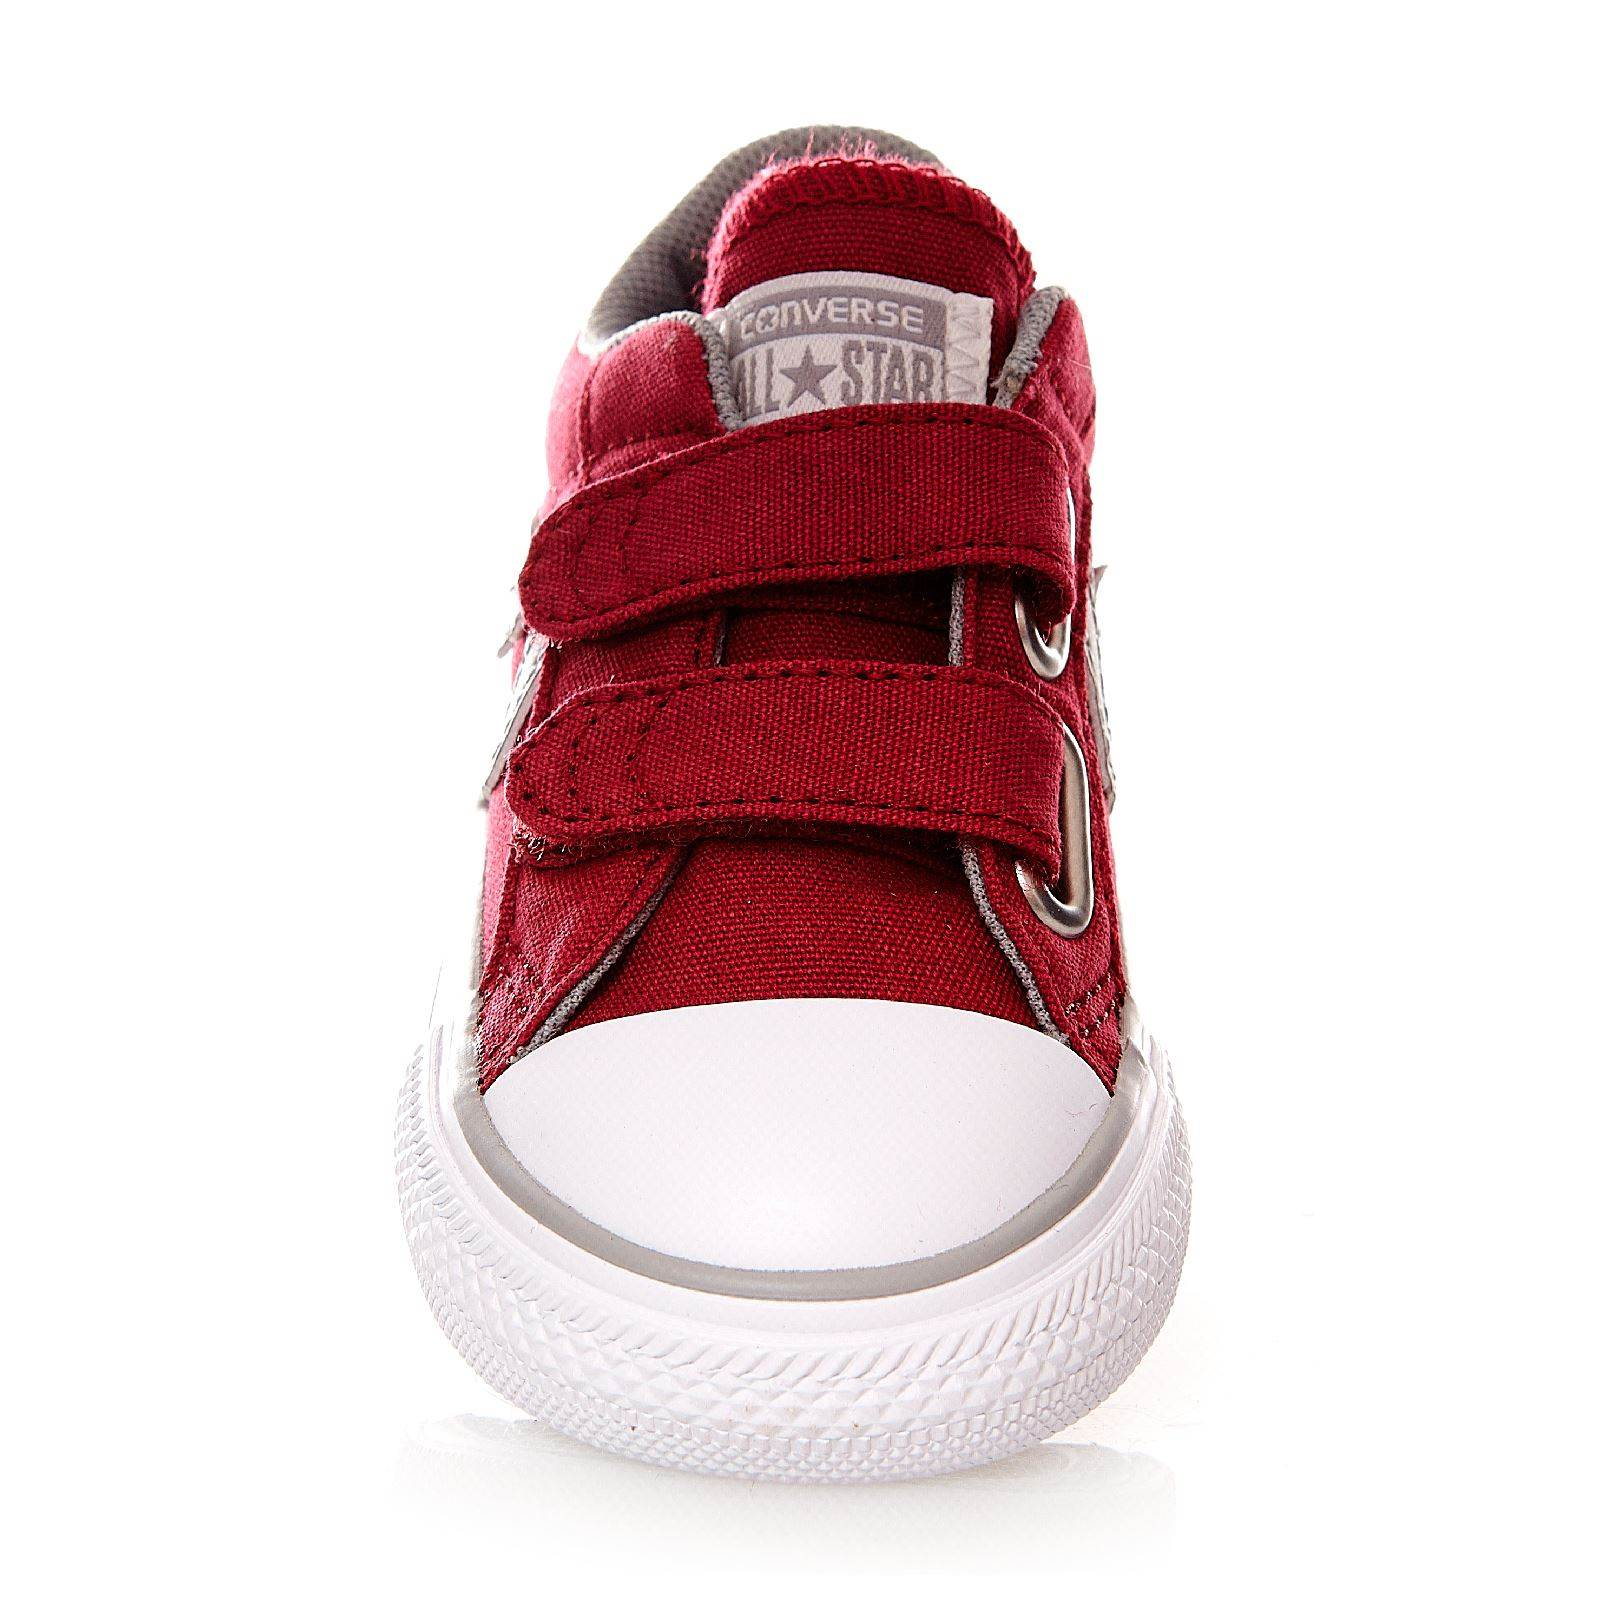 converse star player rose